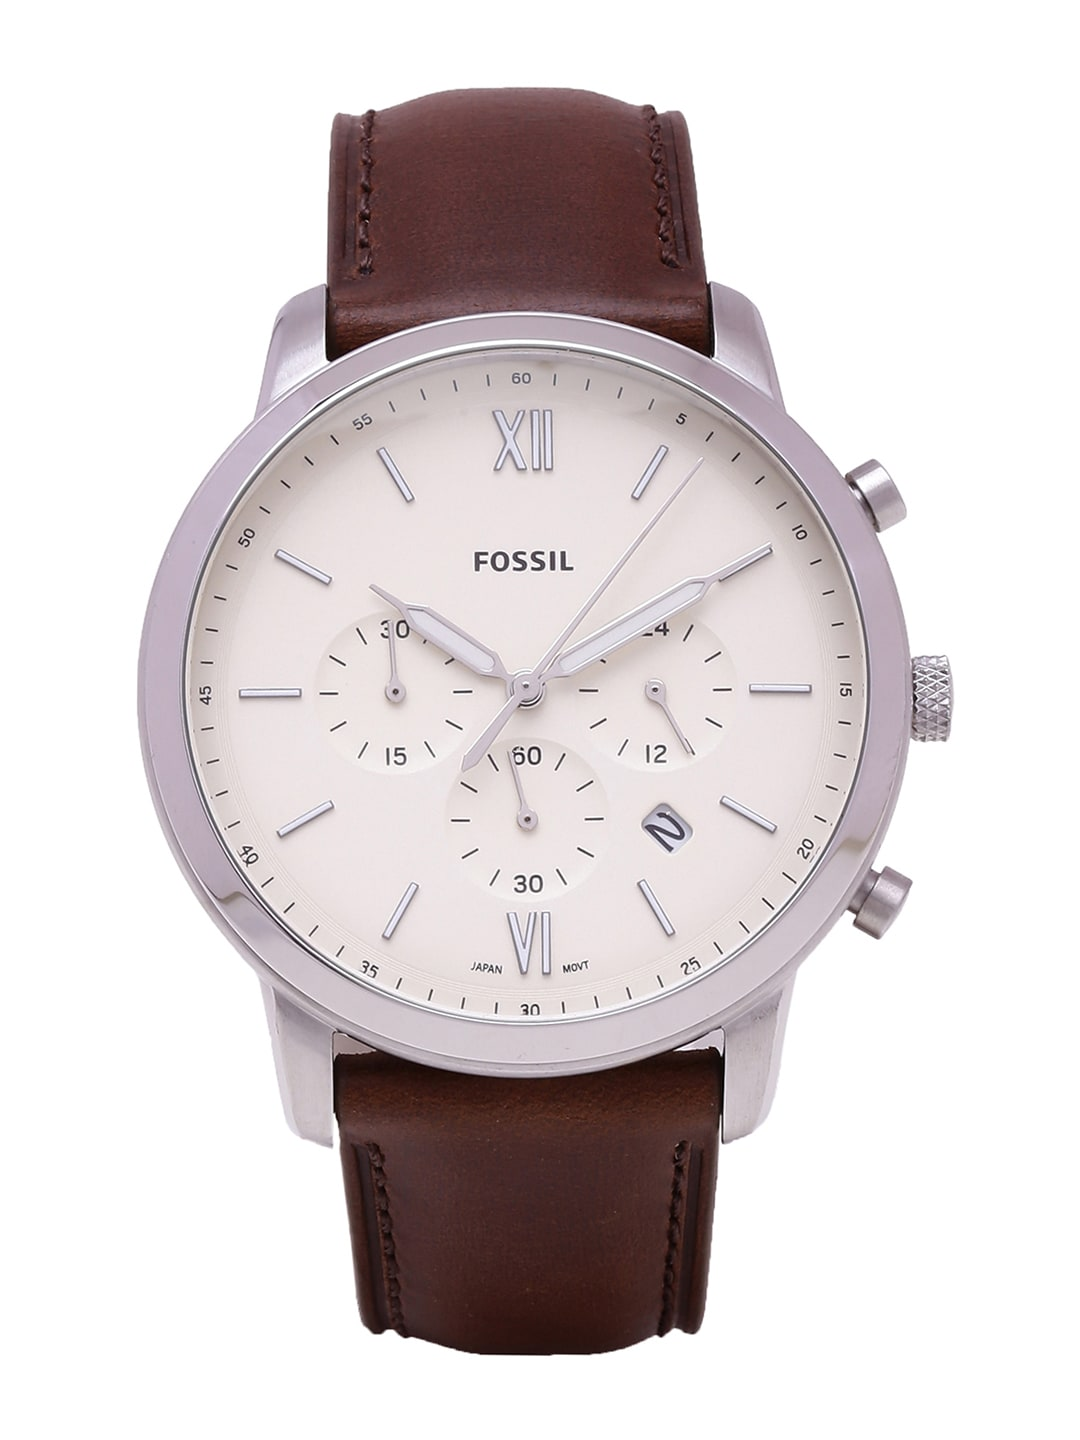 Fossil Watch Buy Watches For Men Women Online Myntra Me3138 Grant Sport Automatic Skeleton Dial Black Leather